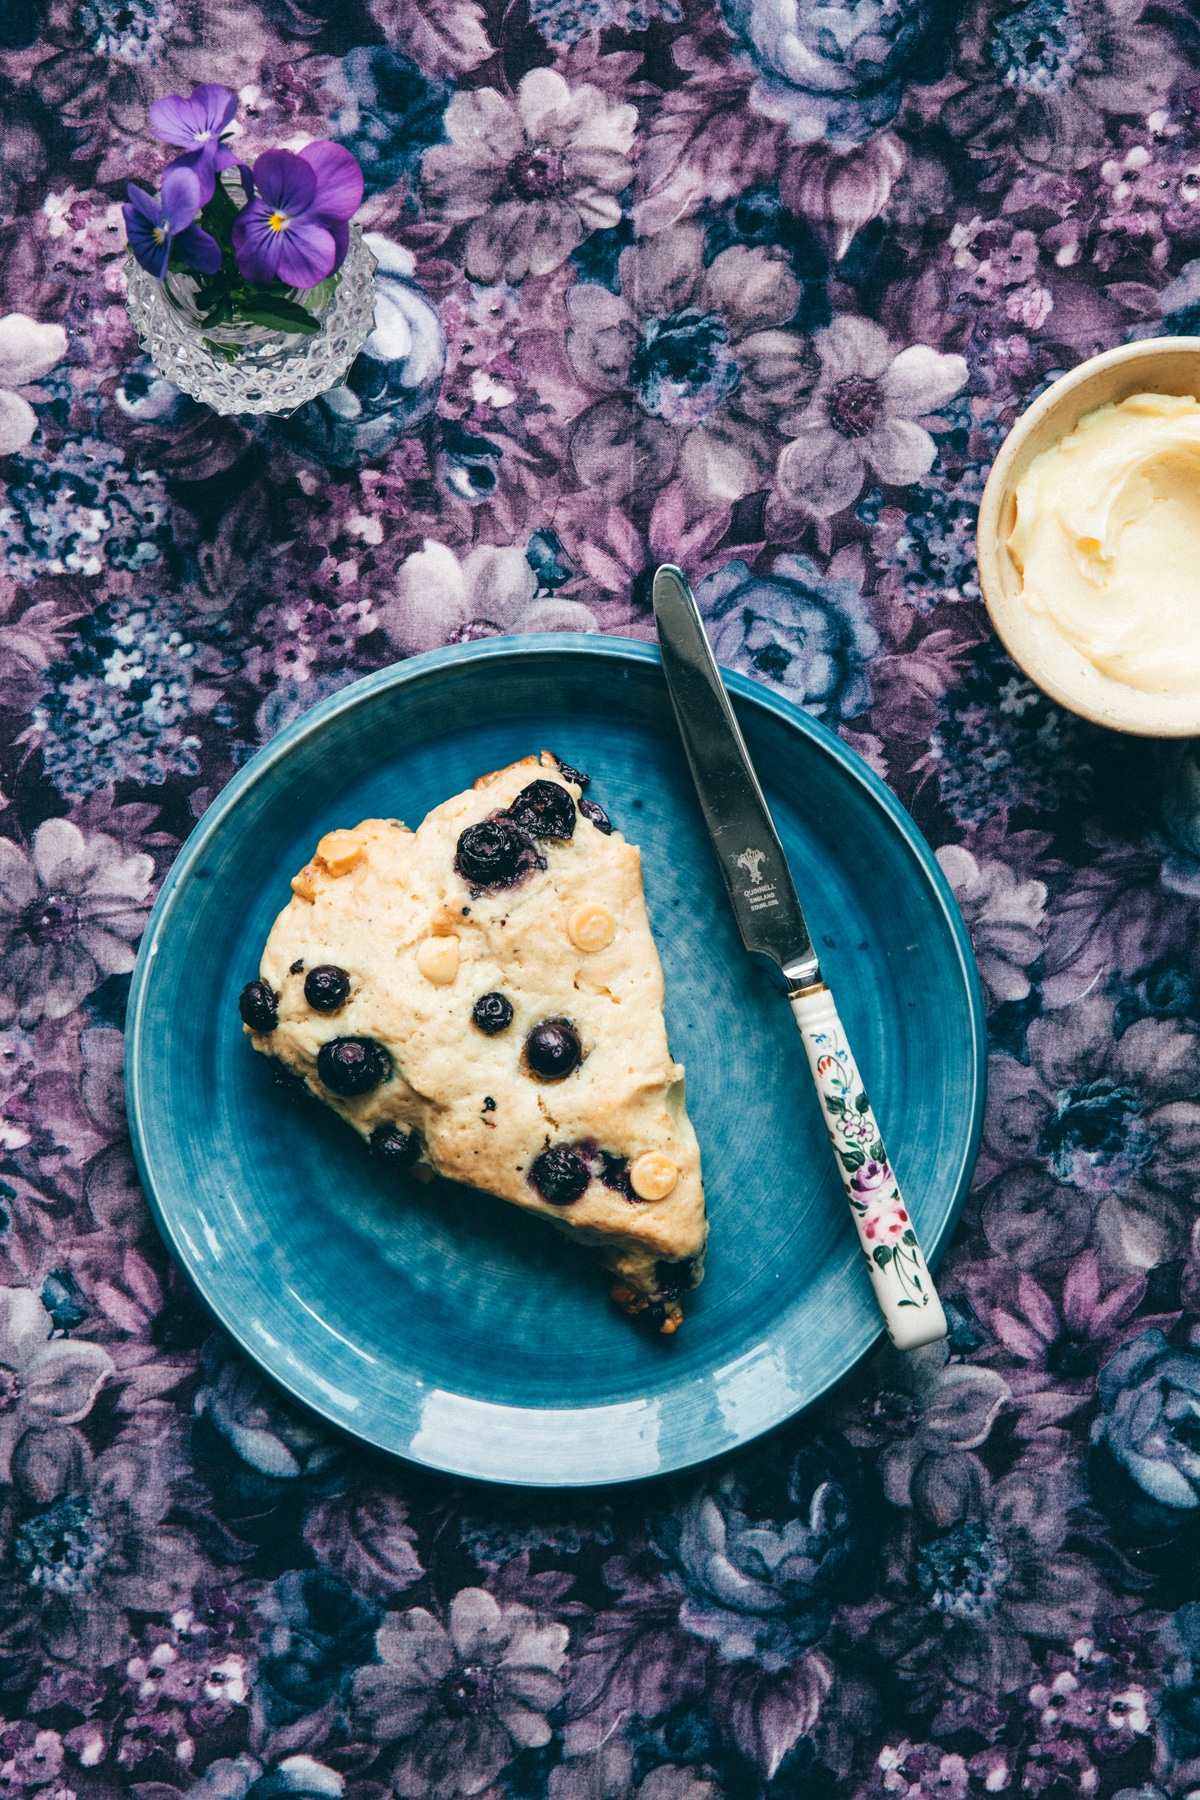 A blueberry white chocolate scone on a blue plate on a flowered tablecloth.